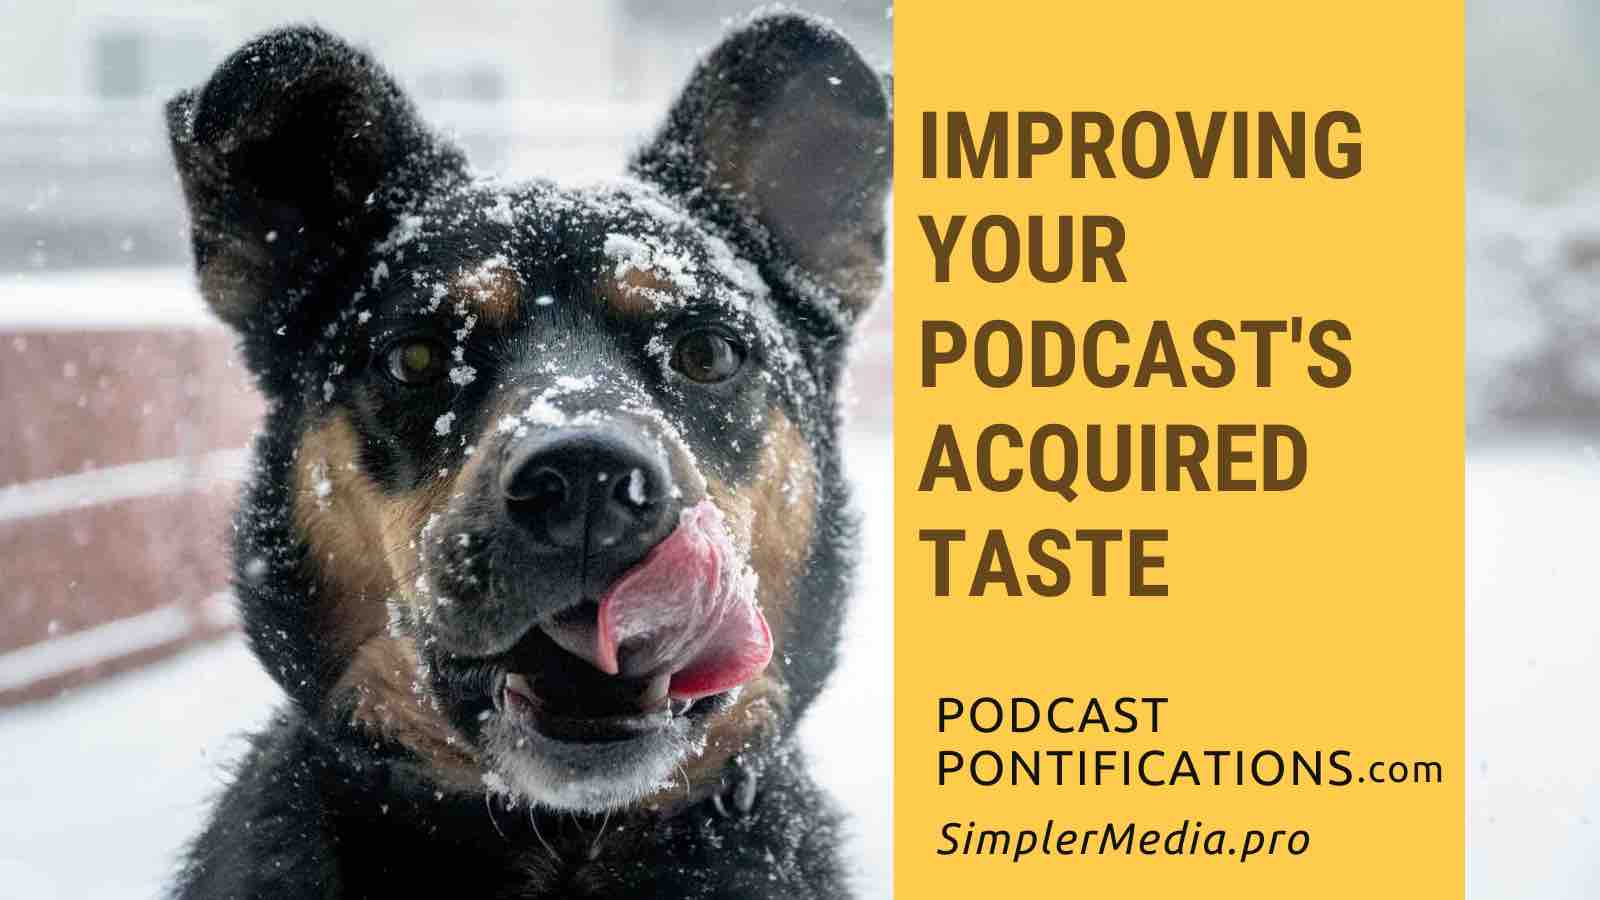 Improving Your Podcast's Acquired Taste